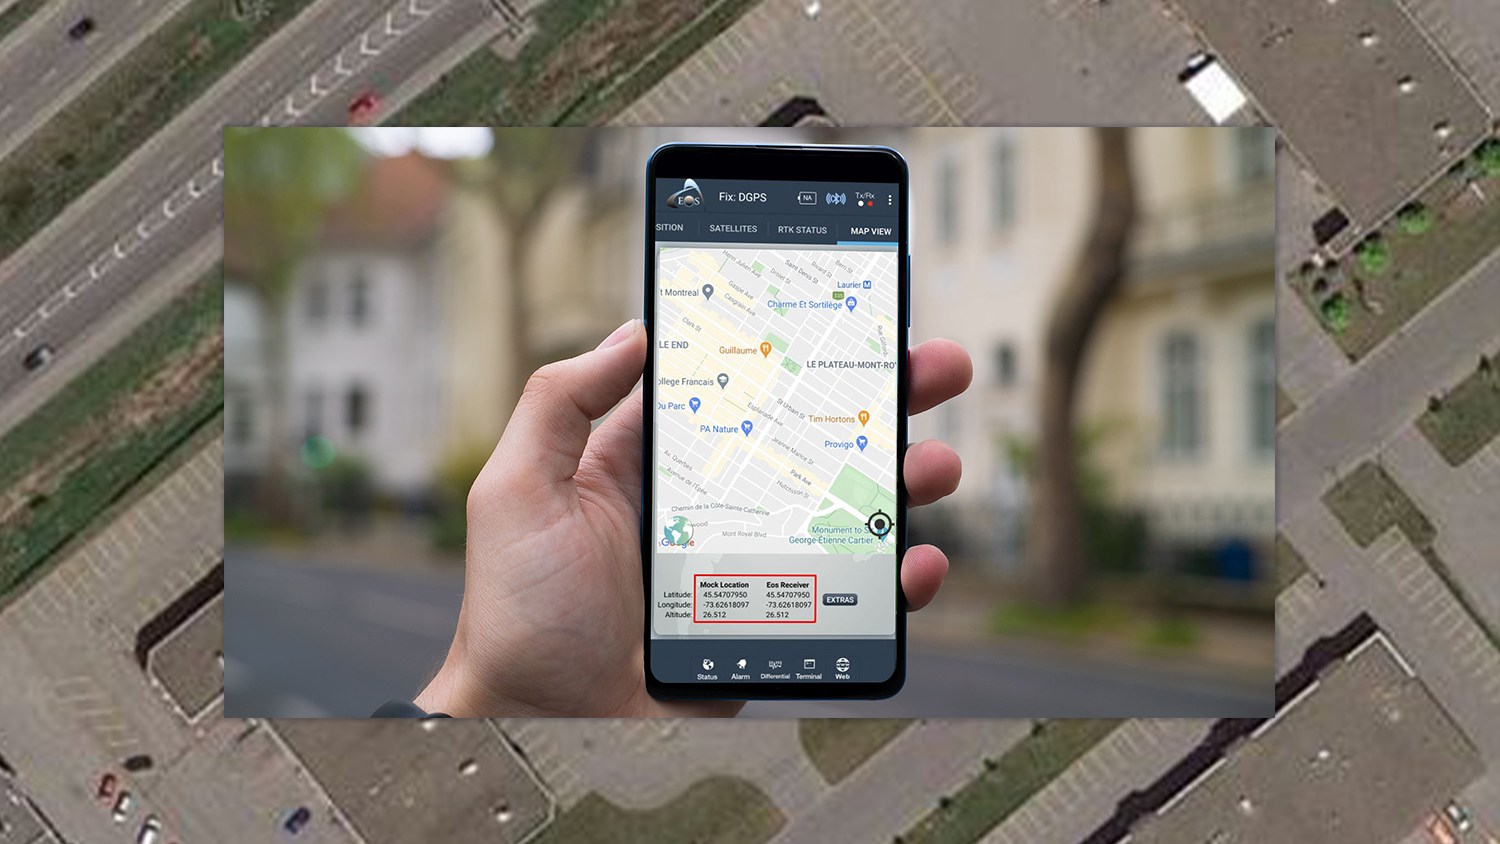 How to Enable Mock Location on Android for the Eos Tool Pro app mobile mapping external GNSS GPS receiver